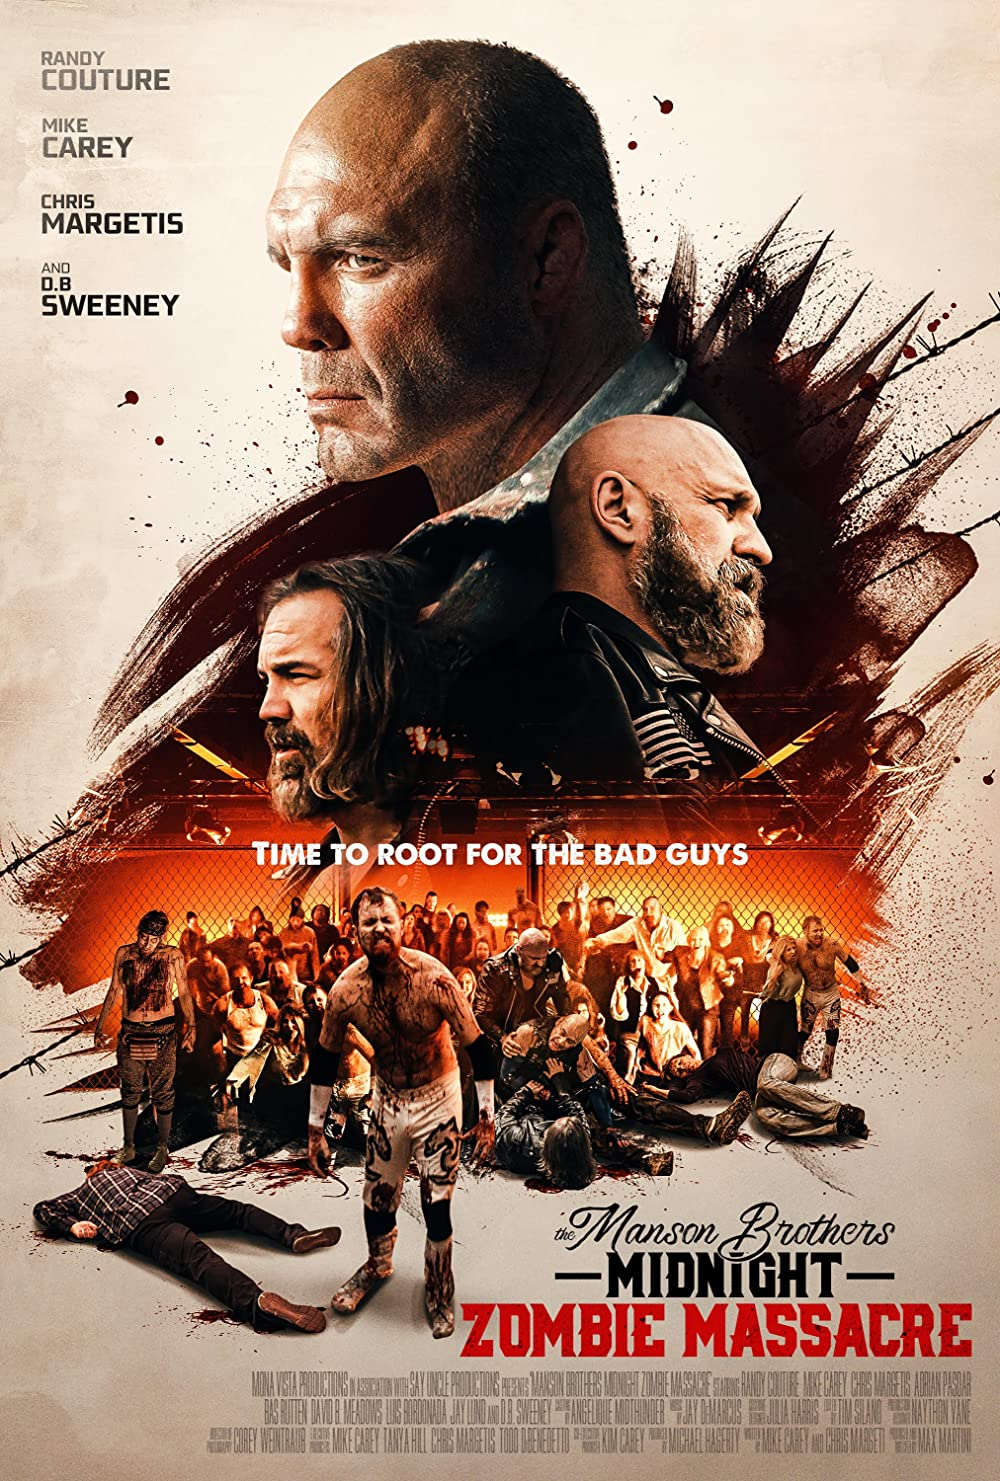 The Manson Brothers Midnight Zombie Massacre (2021) Hindi Dubbed 720p HDRip 800MB Free Download